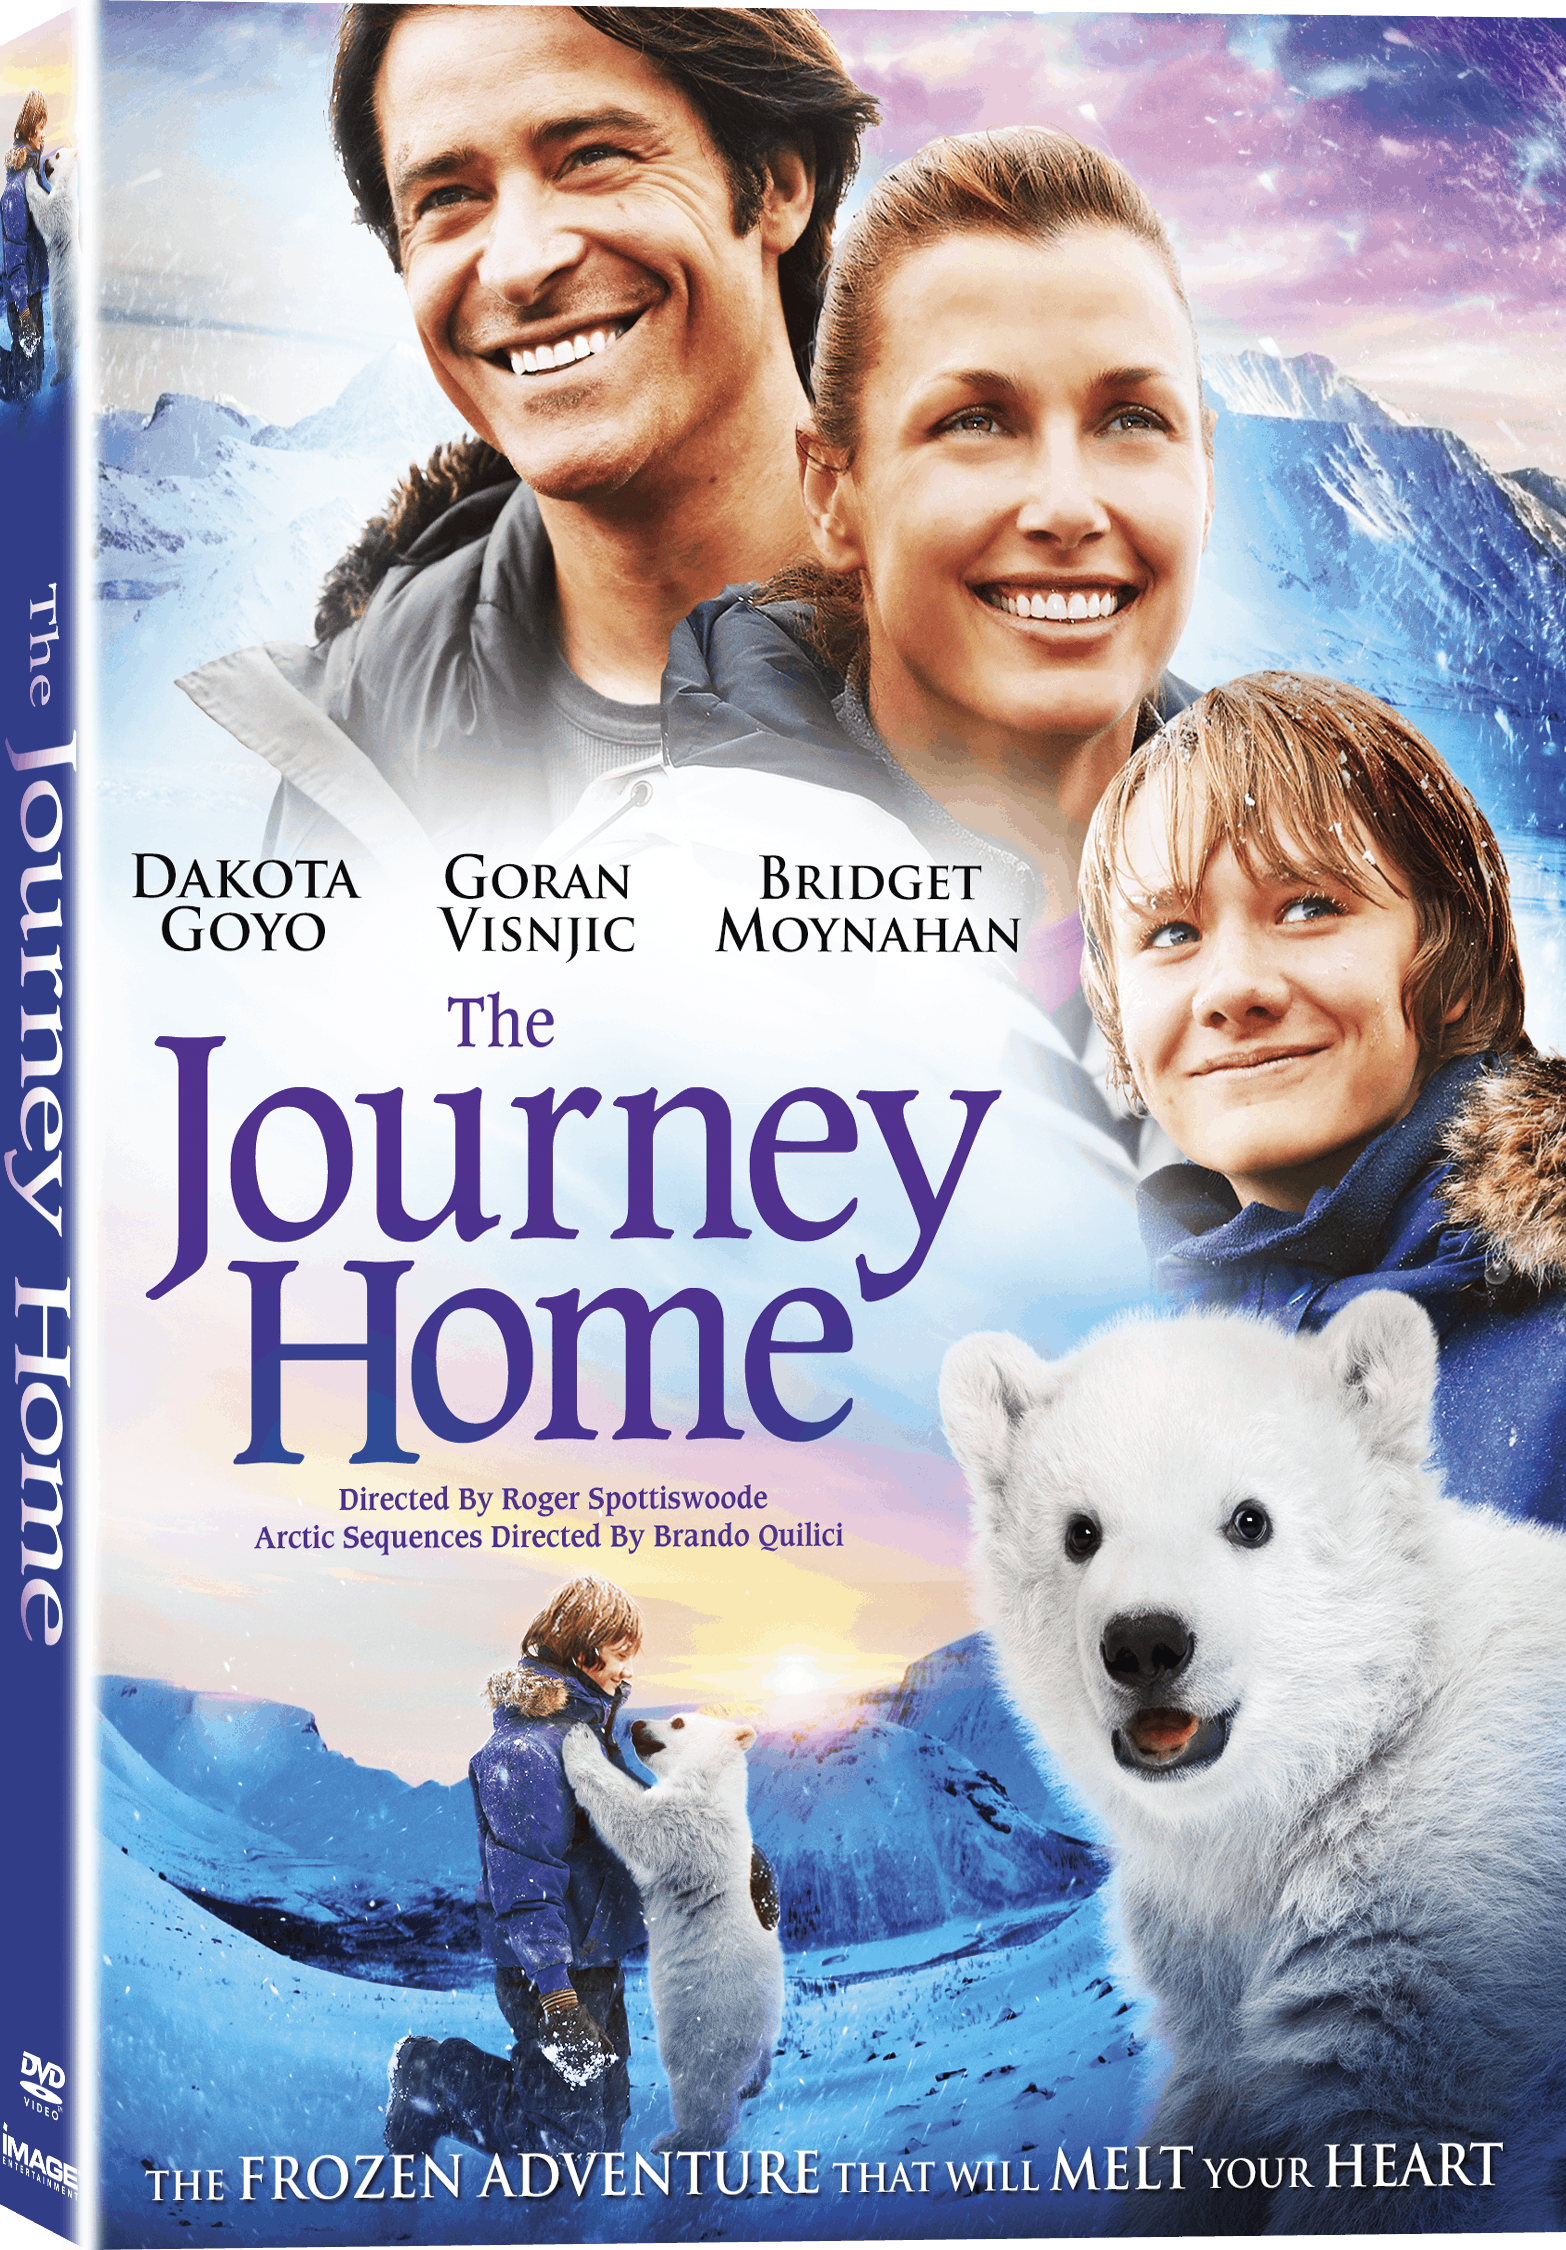 The Journey Home - Available On DVD At WalMart NOW!! (plus $50 Visa card and more giveaway) #TheJourneyHome #ad